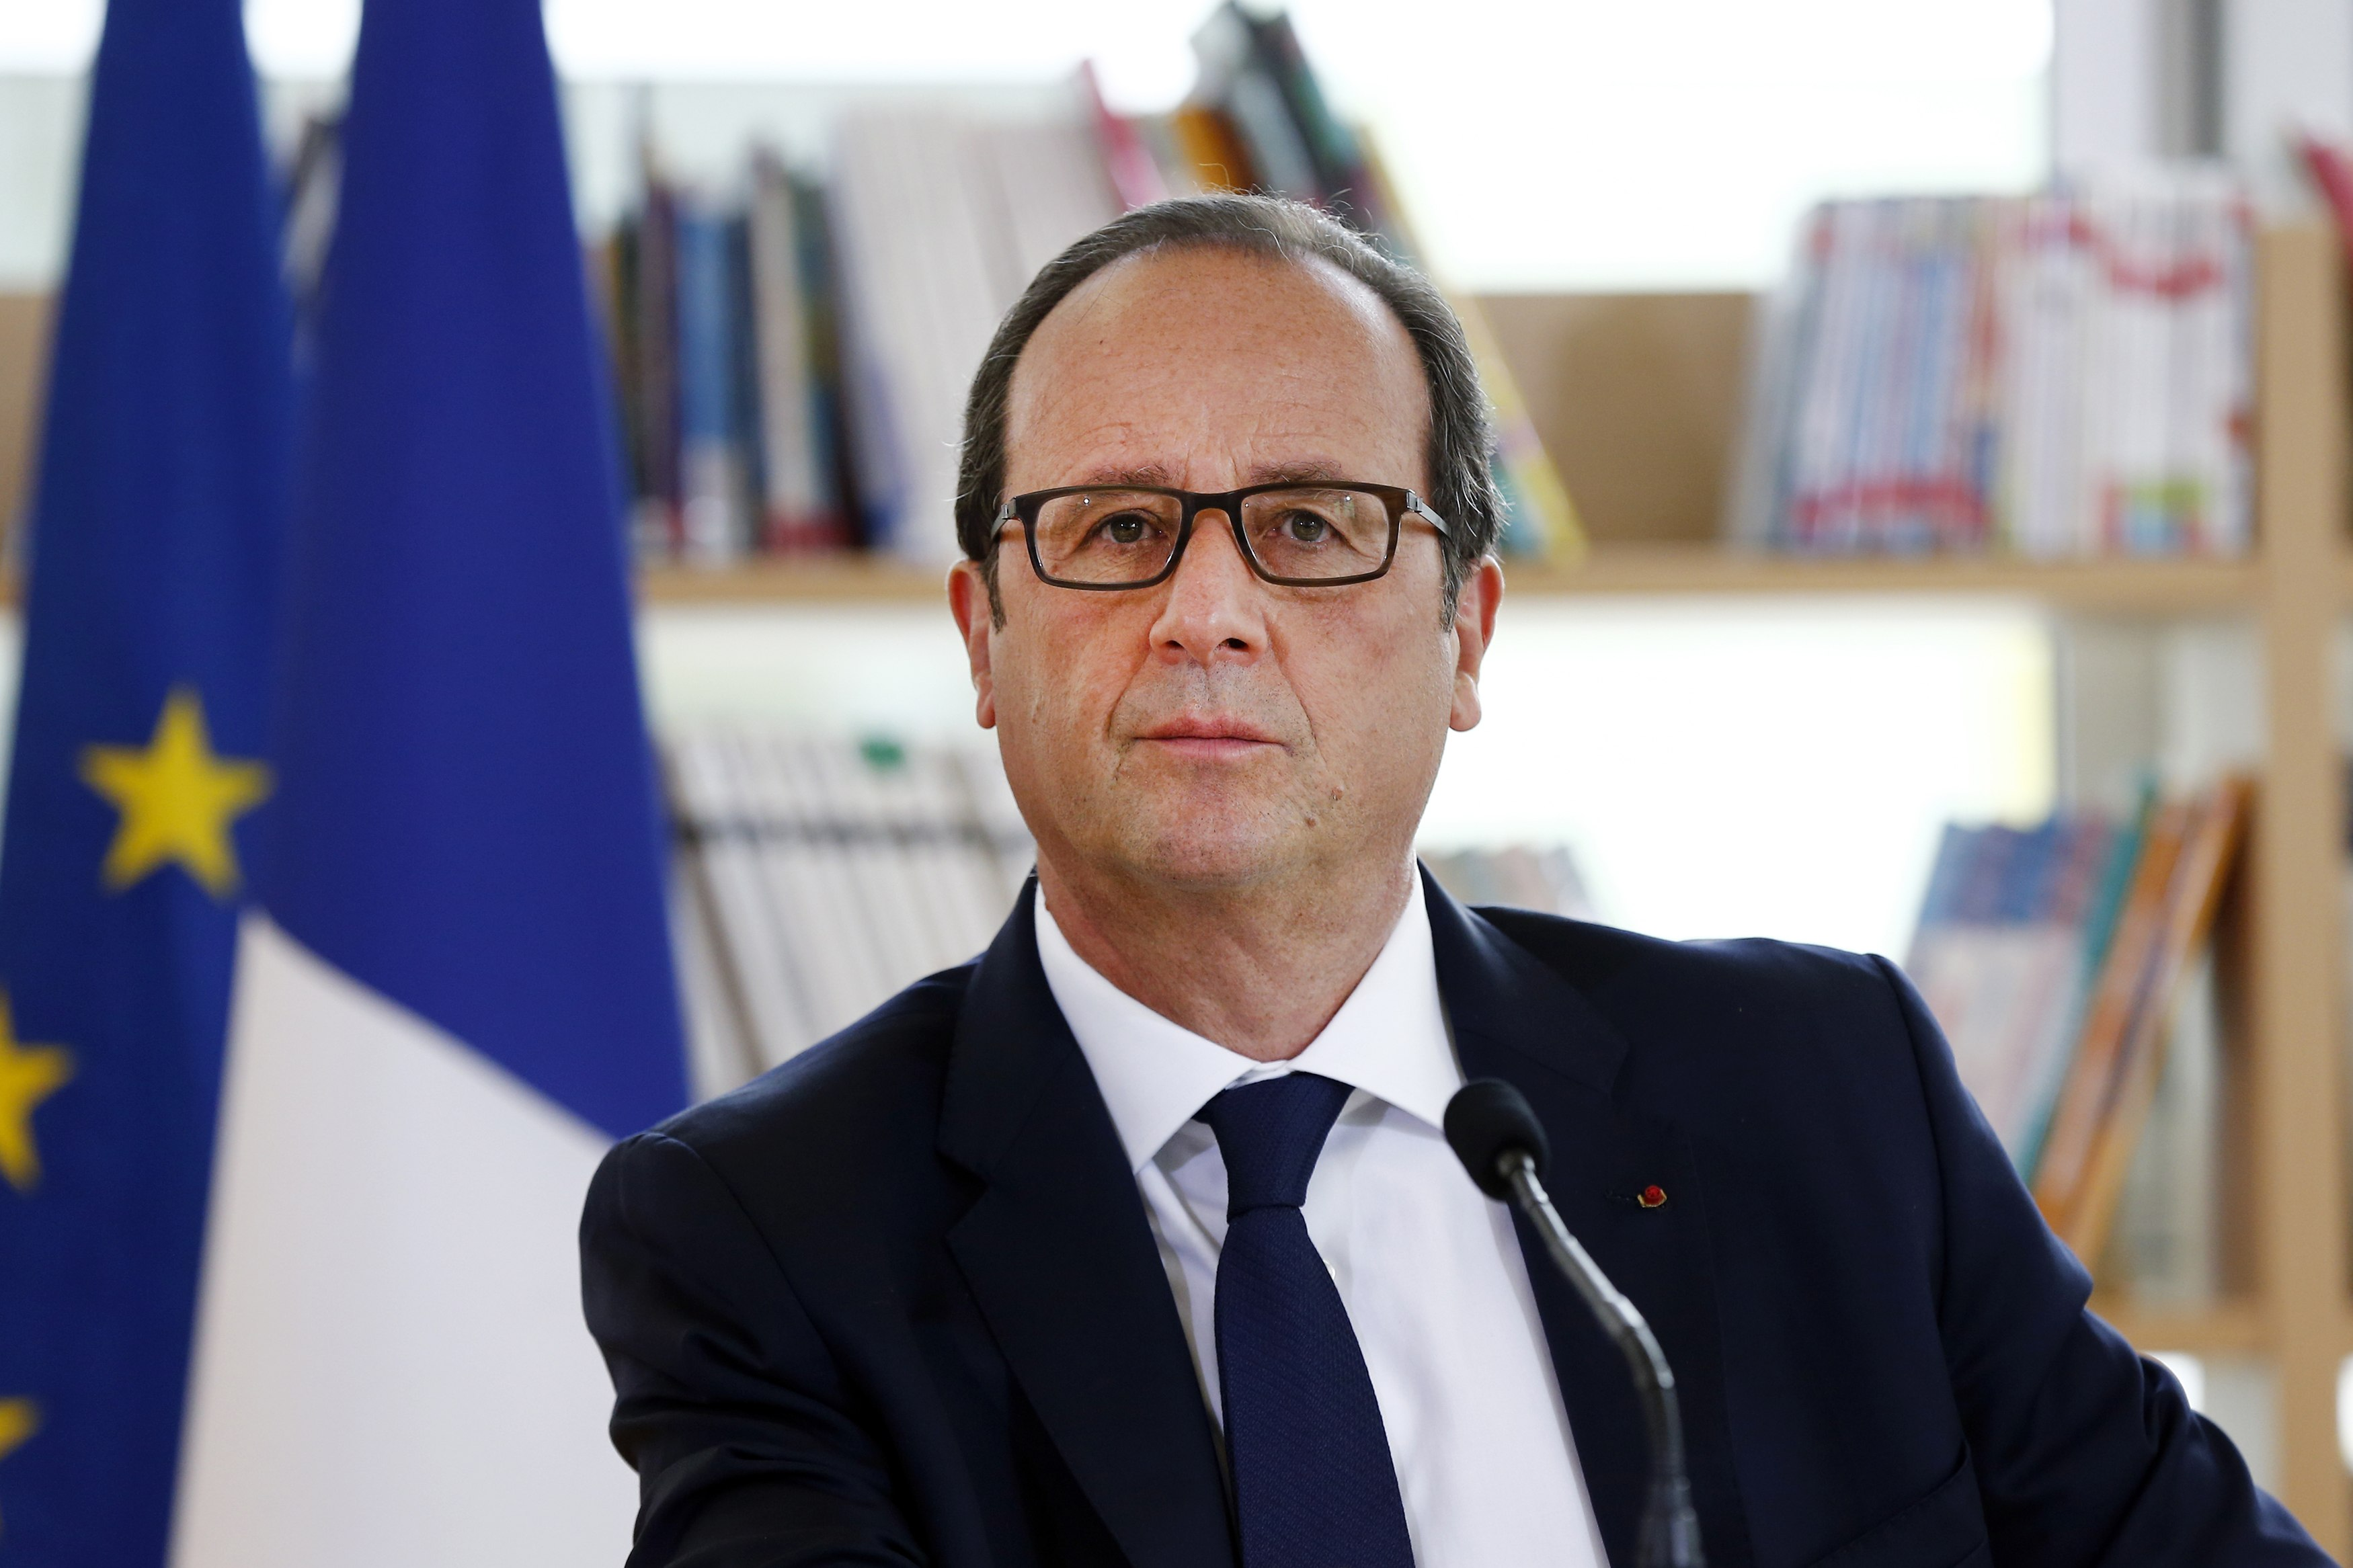 France Raises Possibility of Military Action on Islamic State